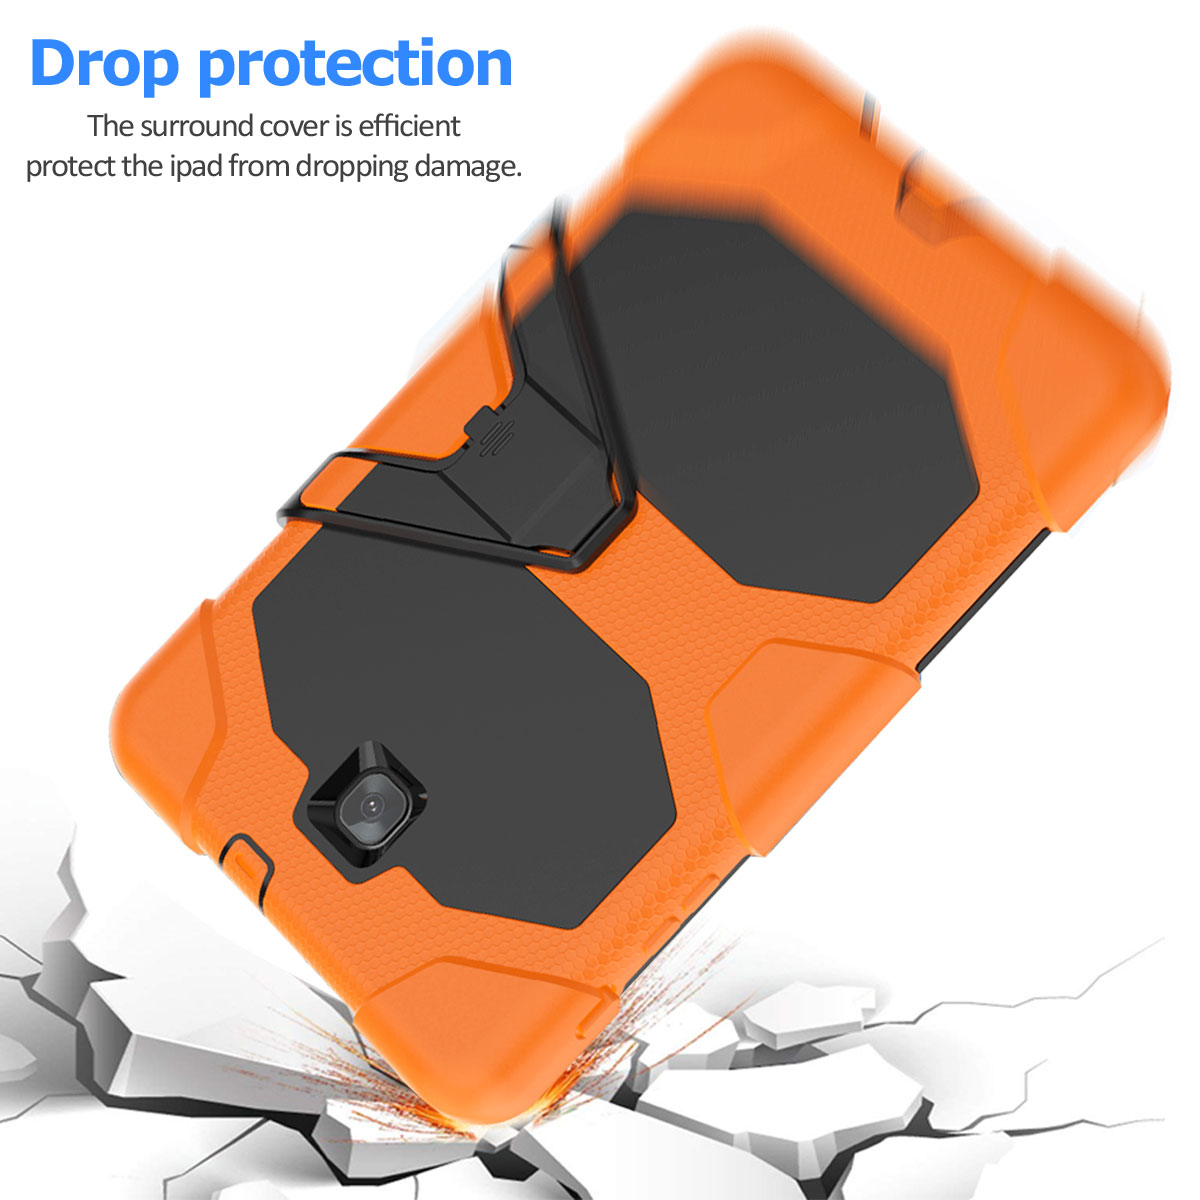 Rugged-Hard-Case-For-Samsung-Galaxy-Tab-A-8-0-2018-SM-T387-with-Screen-Protector thumbnail 47